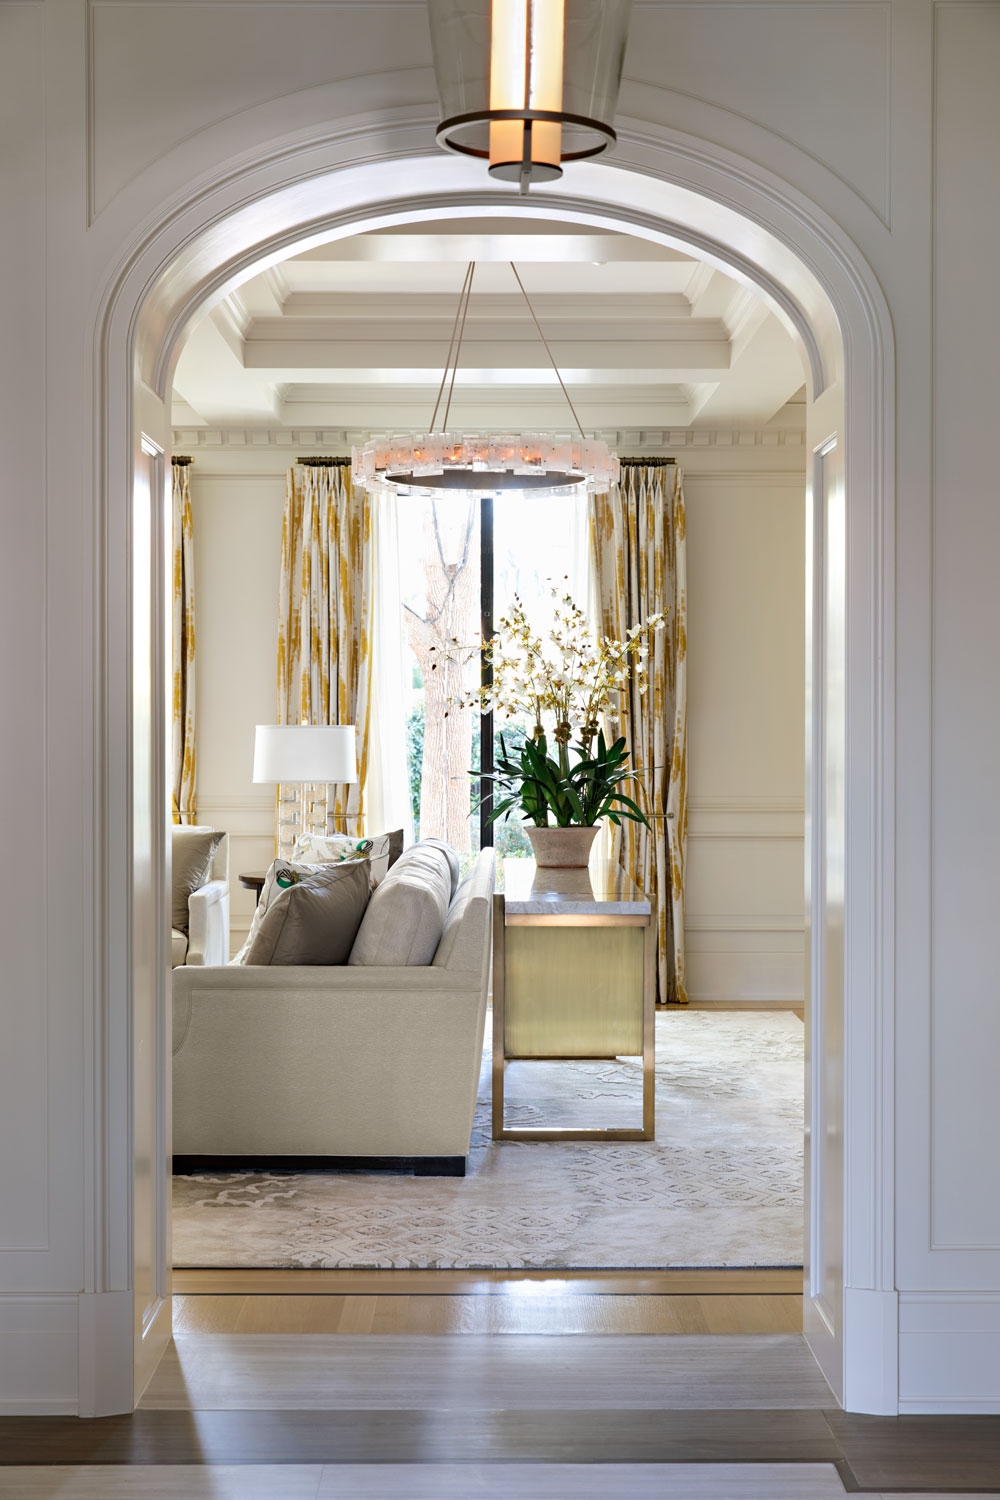 06-arched-doorway-coffered-ceiling-gary-drake-general-contractor.jpg